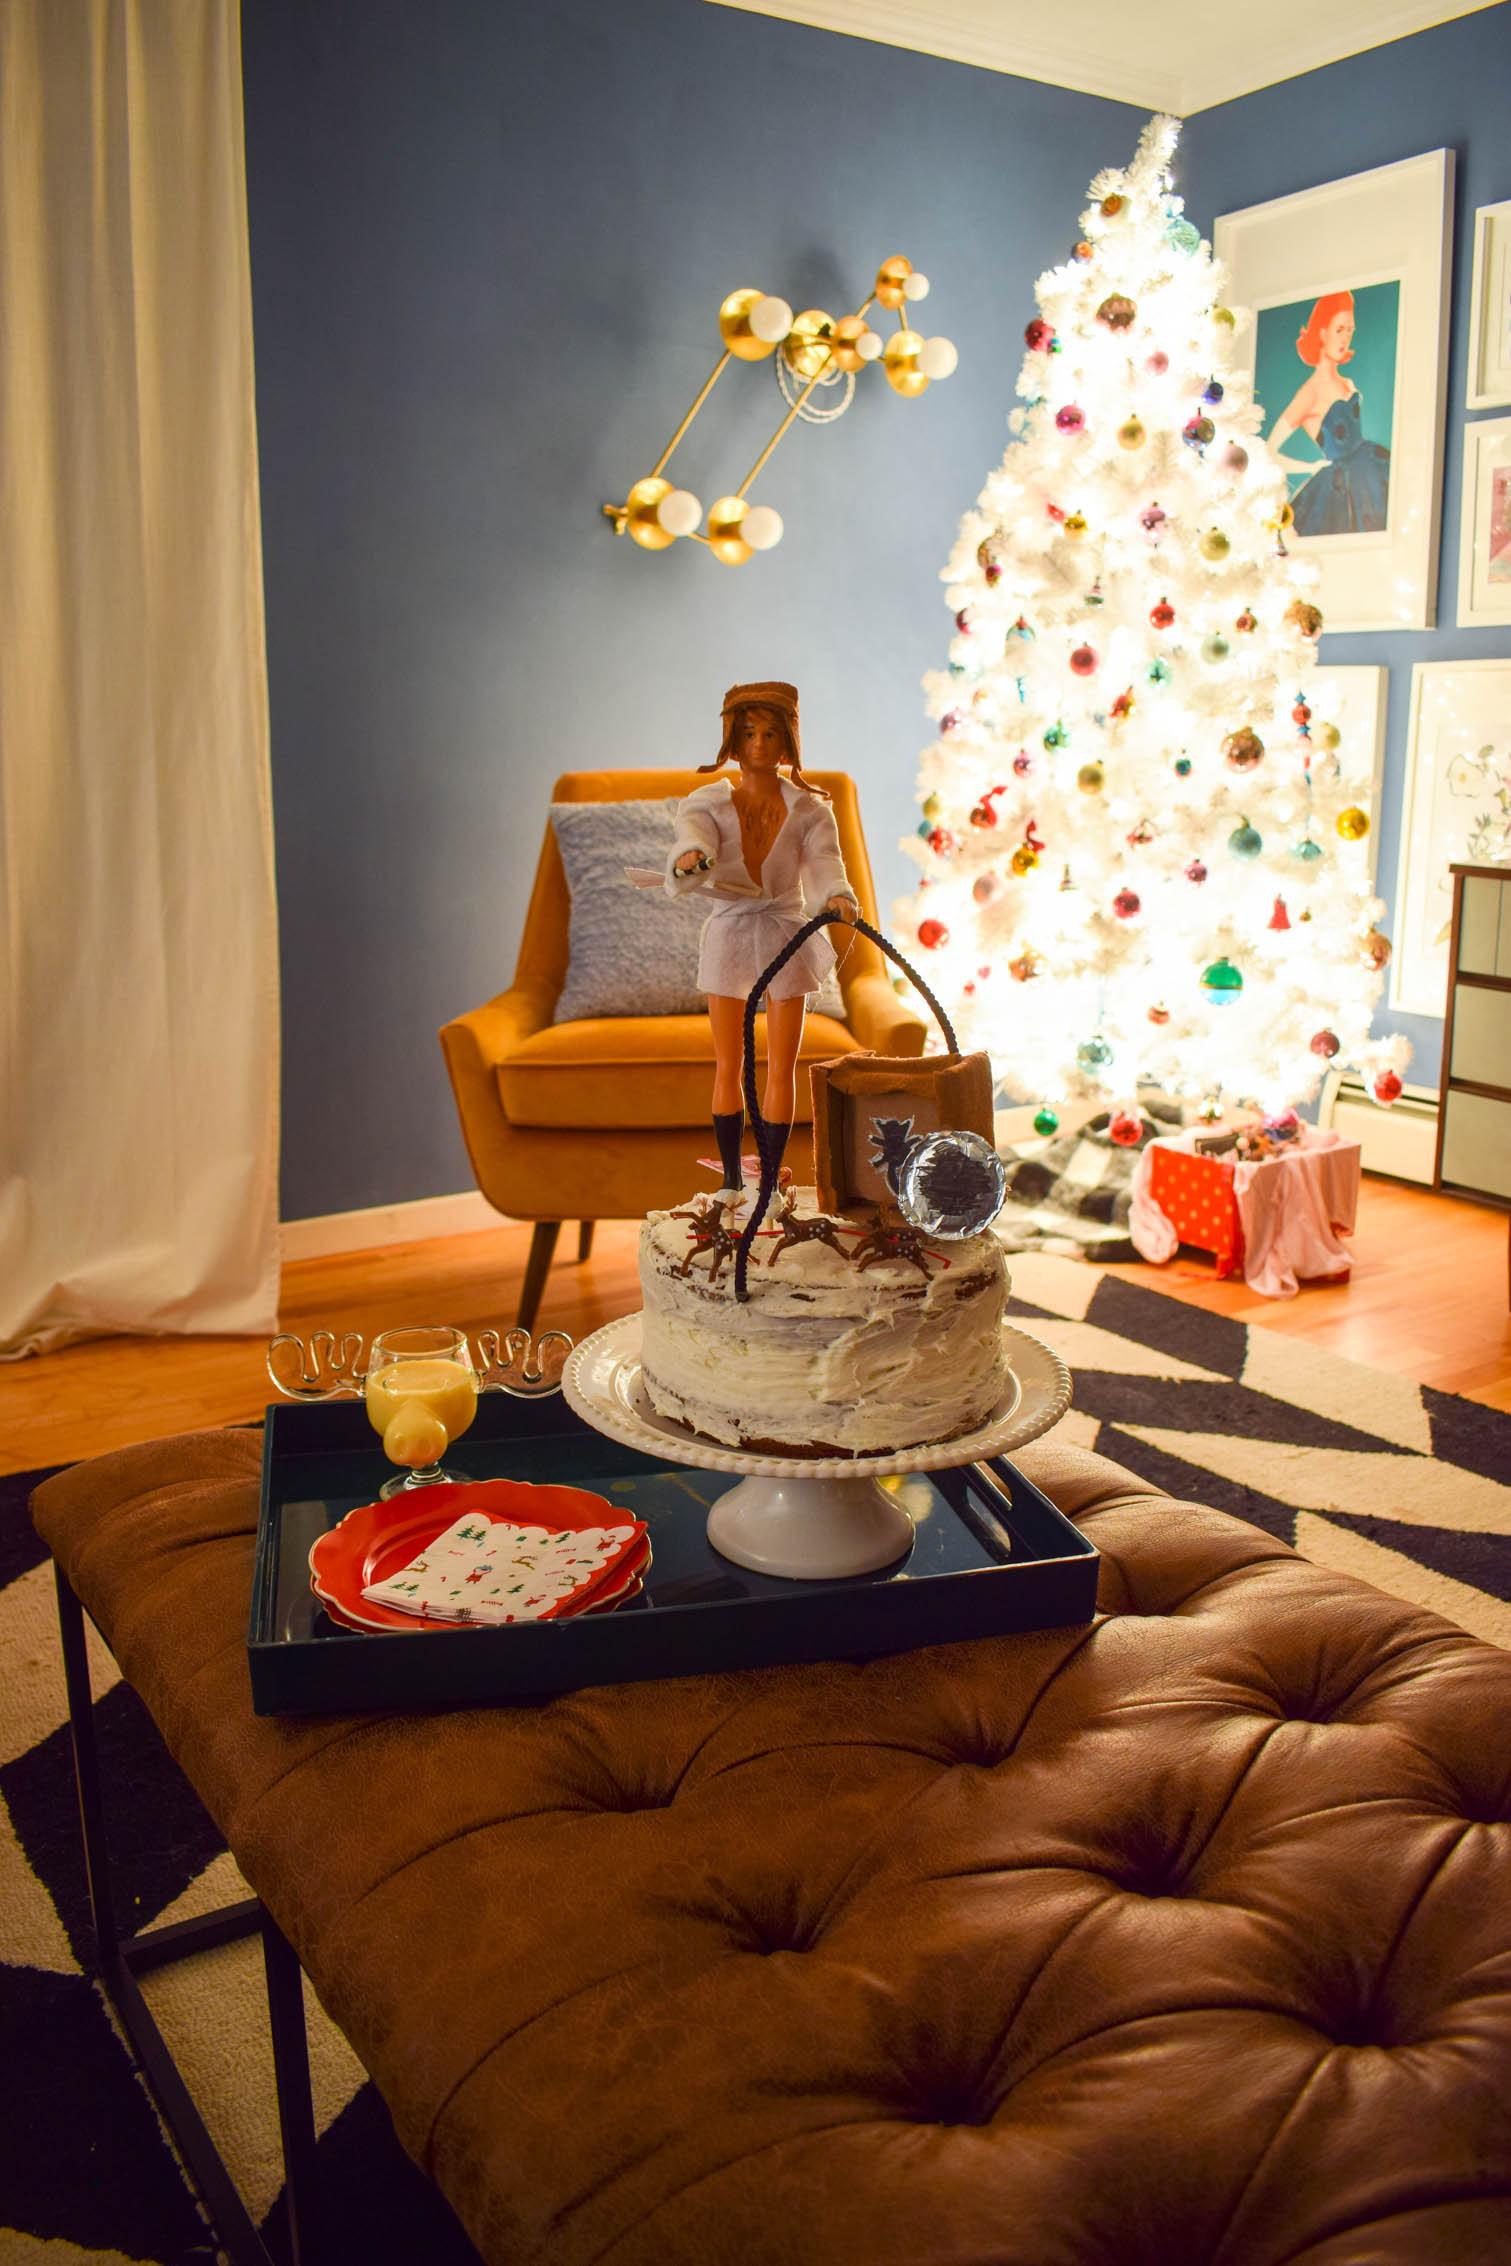 Colourful Christmas decor ideas across a variety of different textures and materials, make for a cozy and playful home this year.